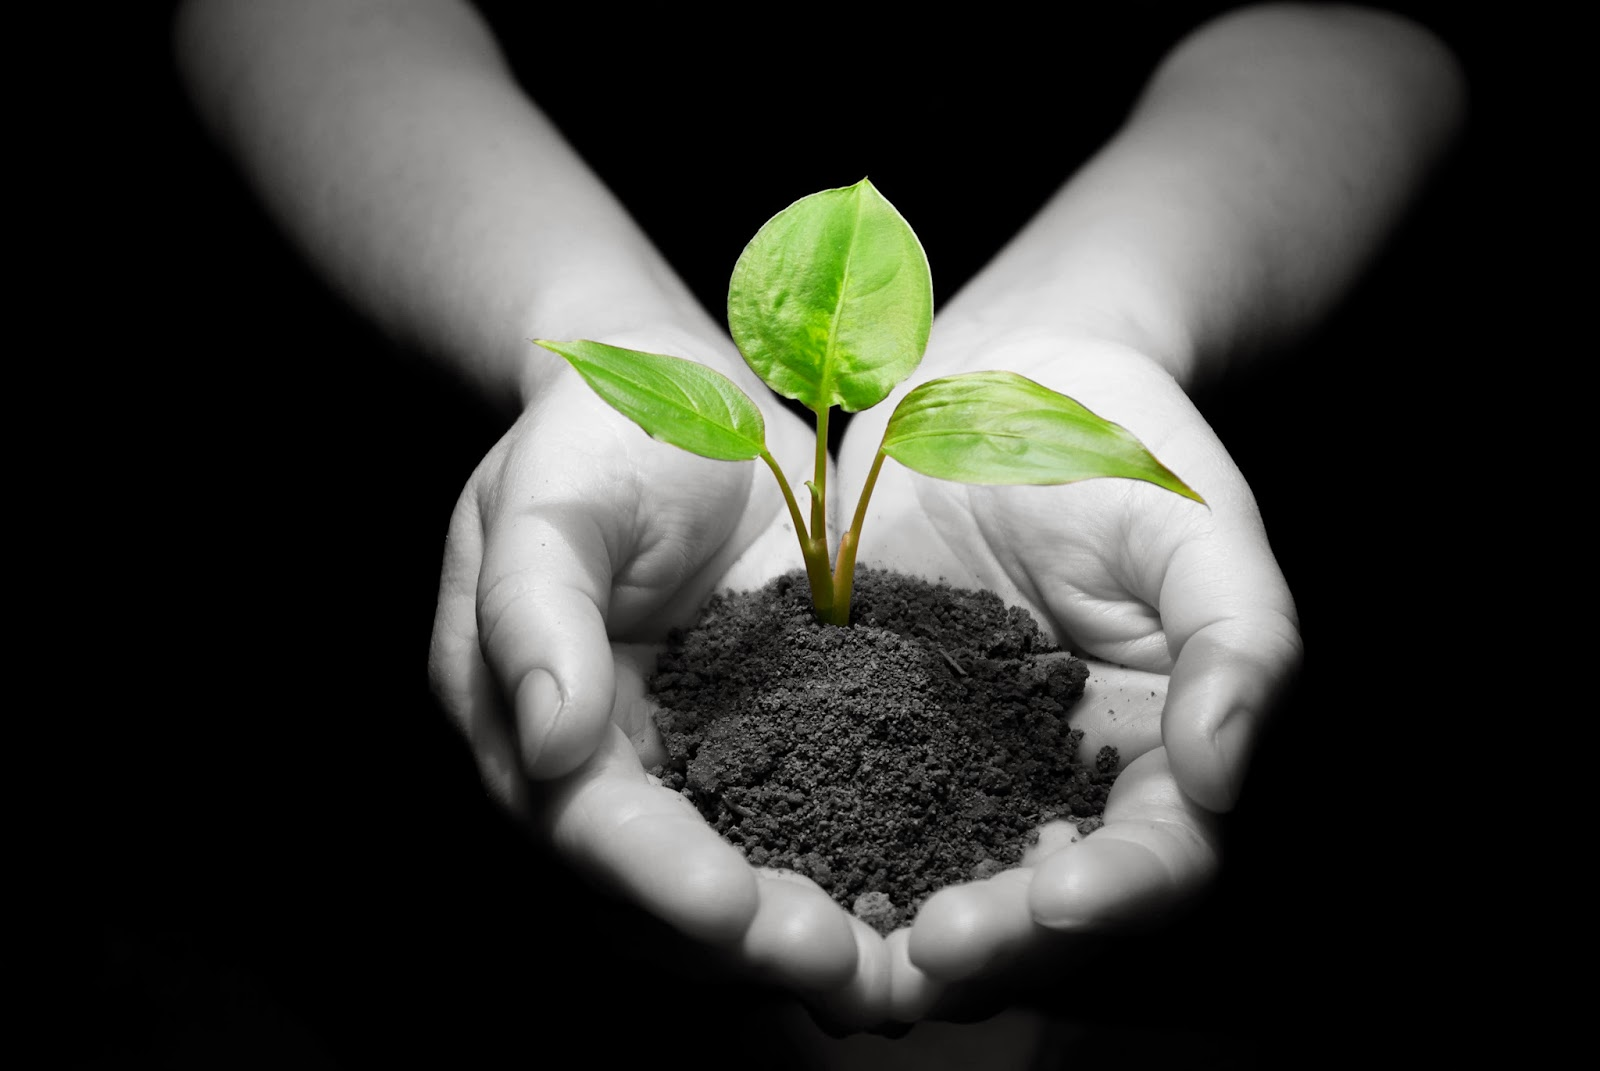 hands-with-plant-dirt3.jpg